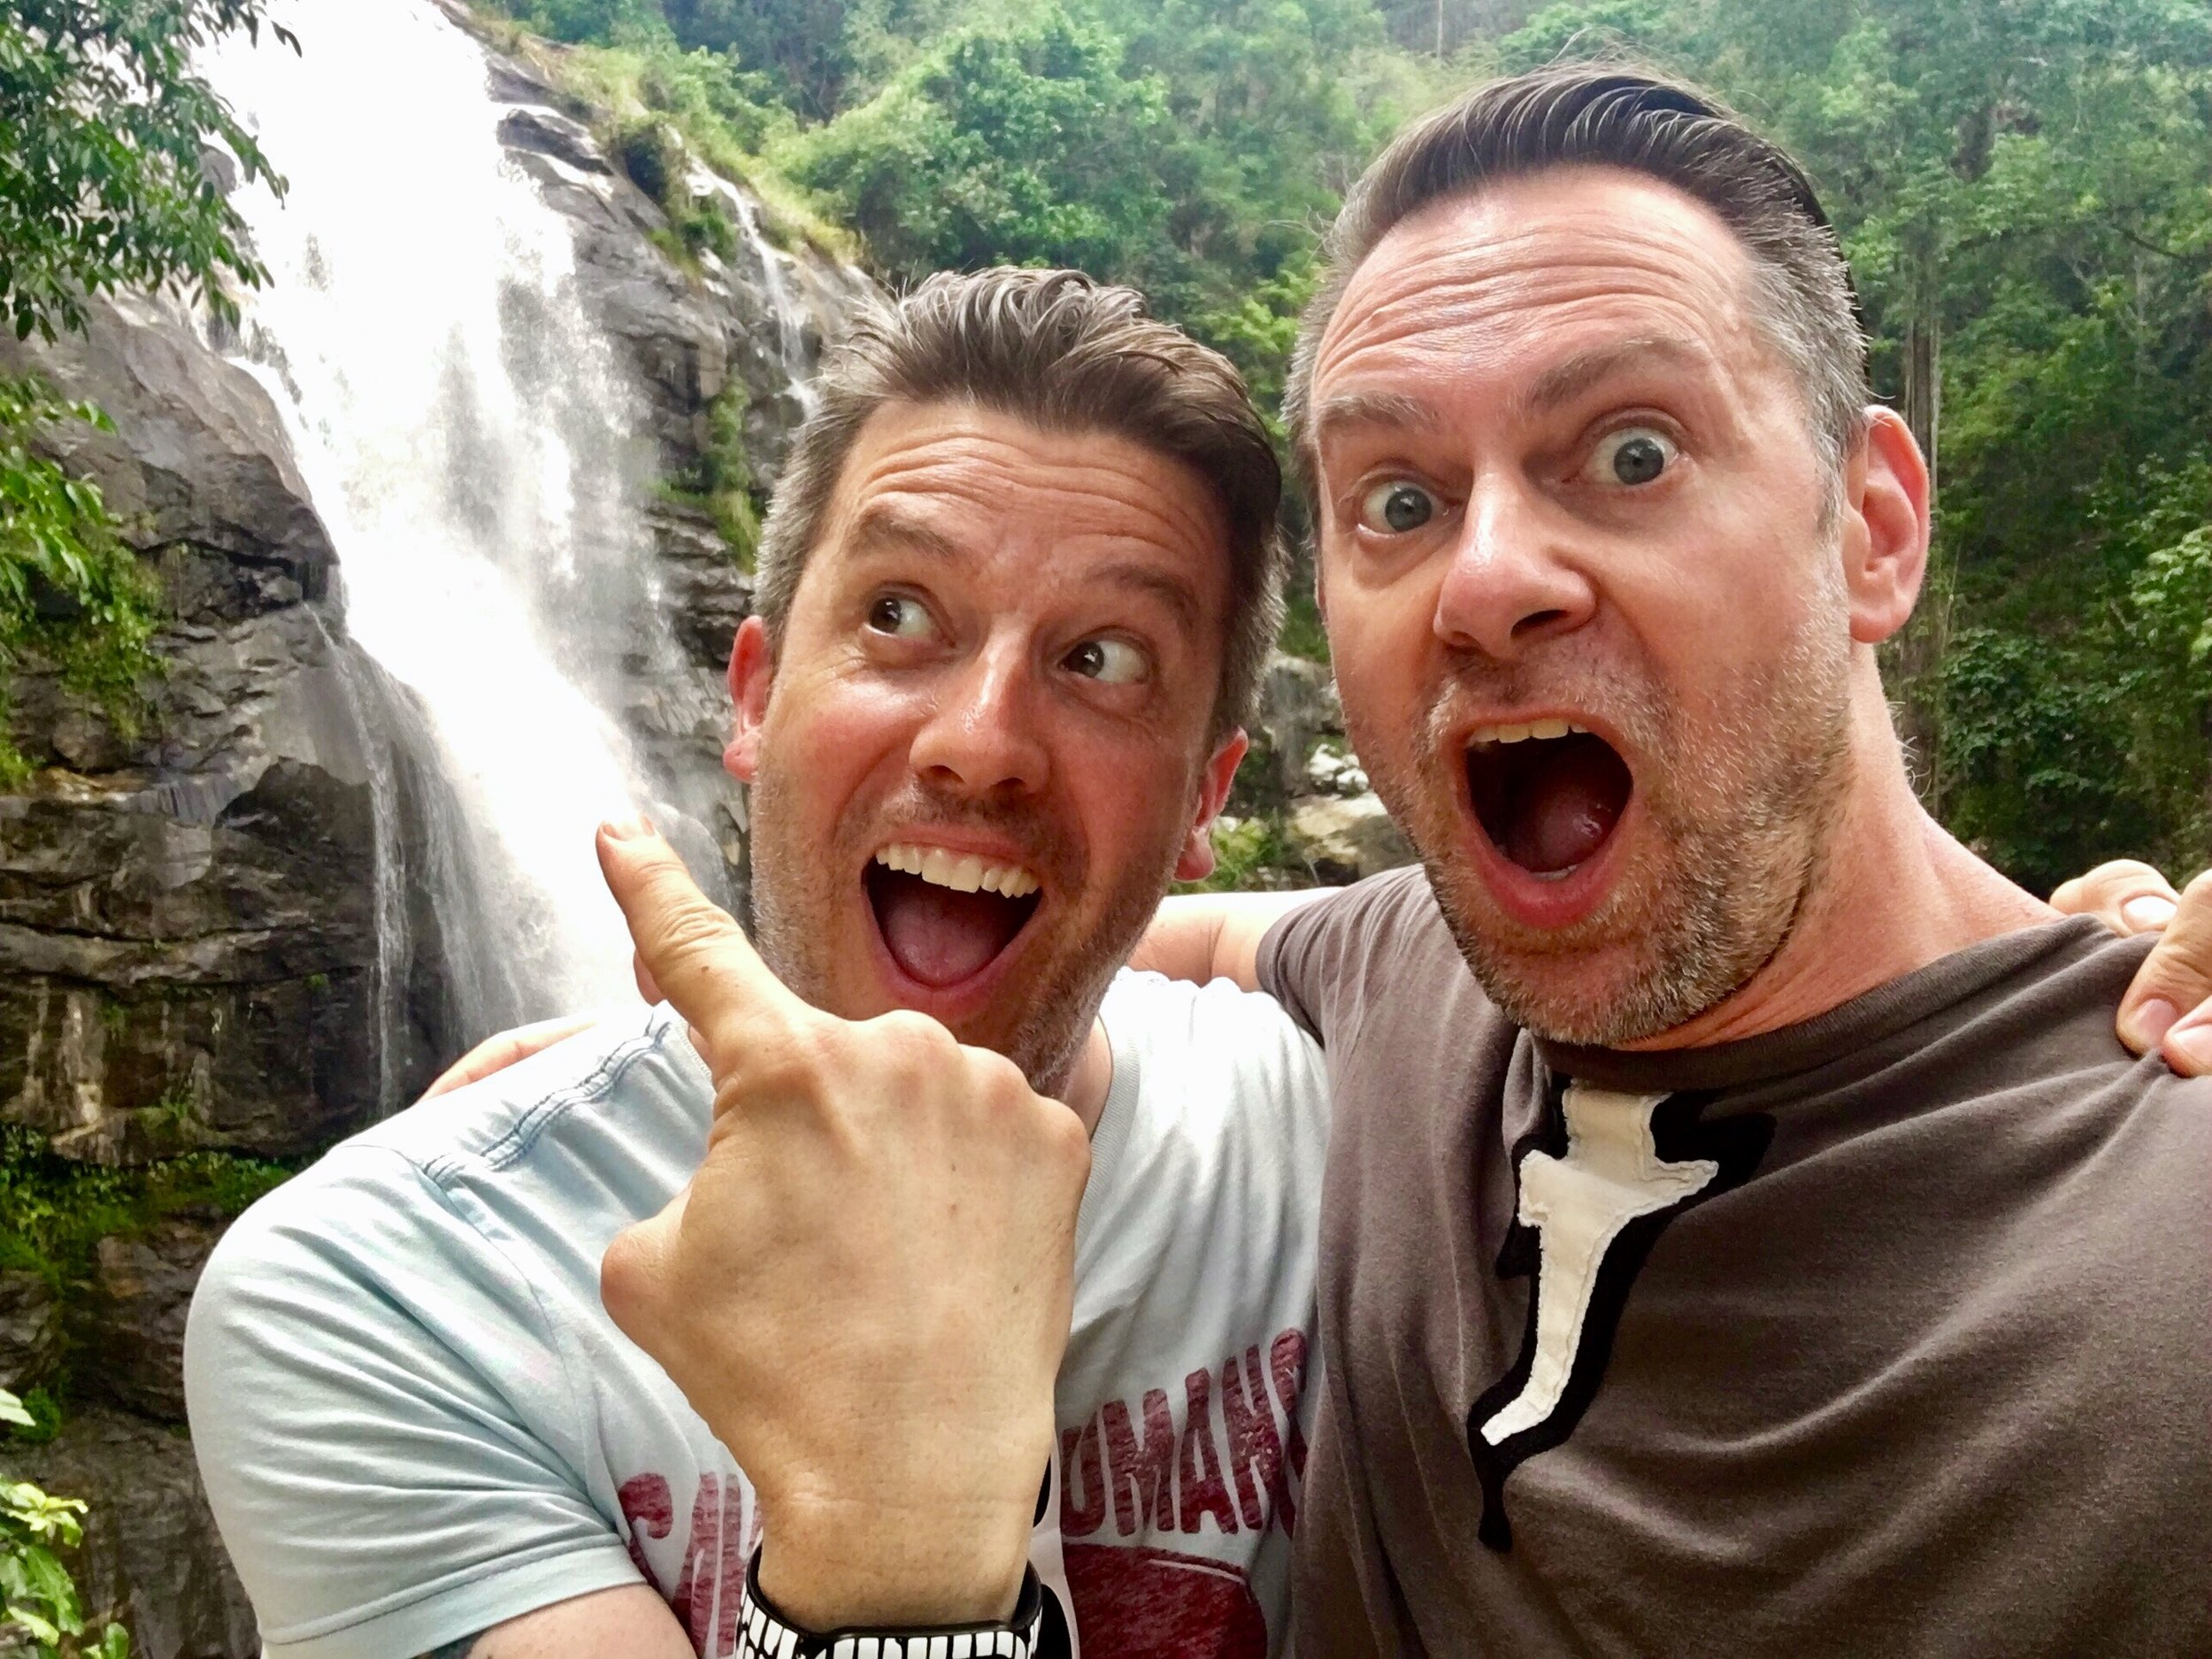 TLC be damned! Wally and Duke did go chasing waterfalls